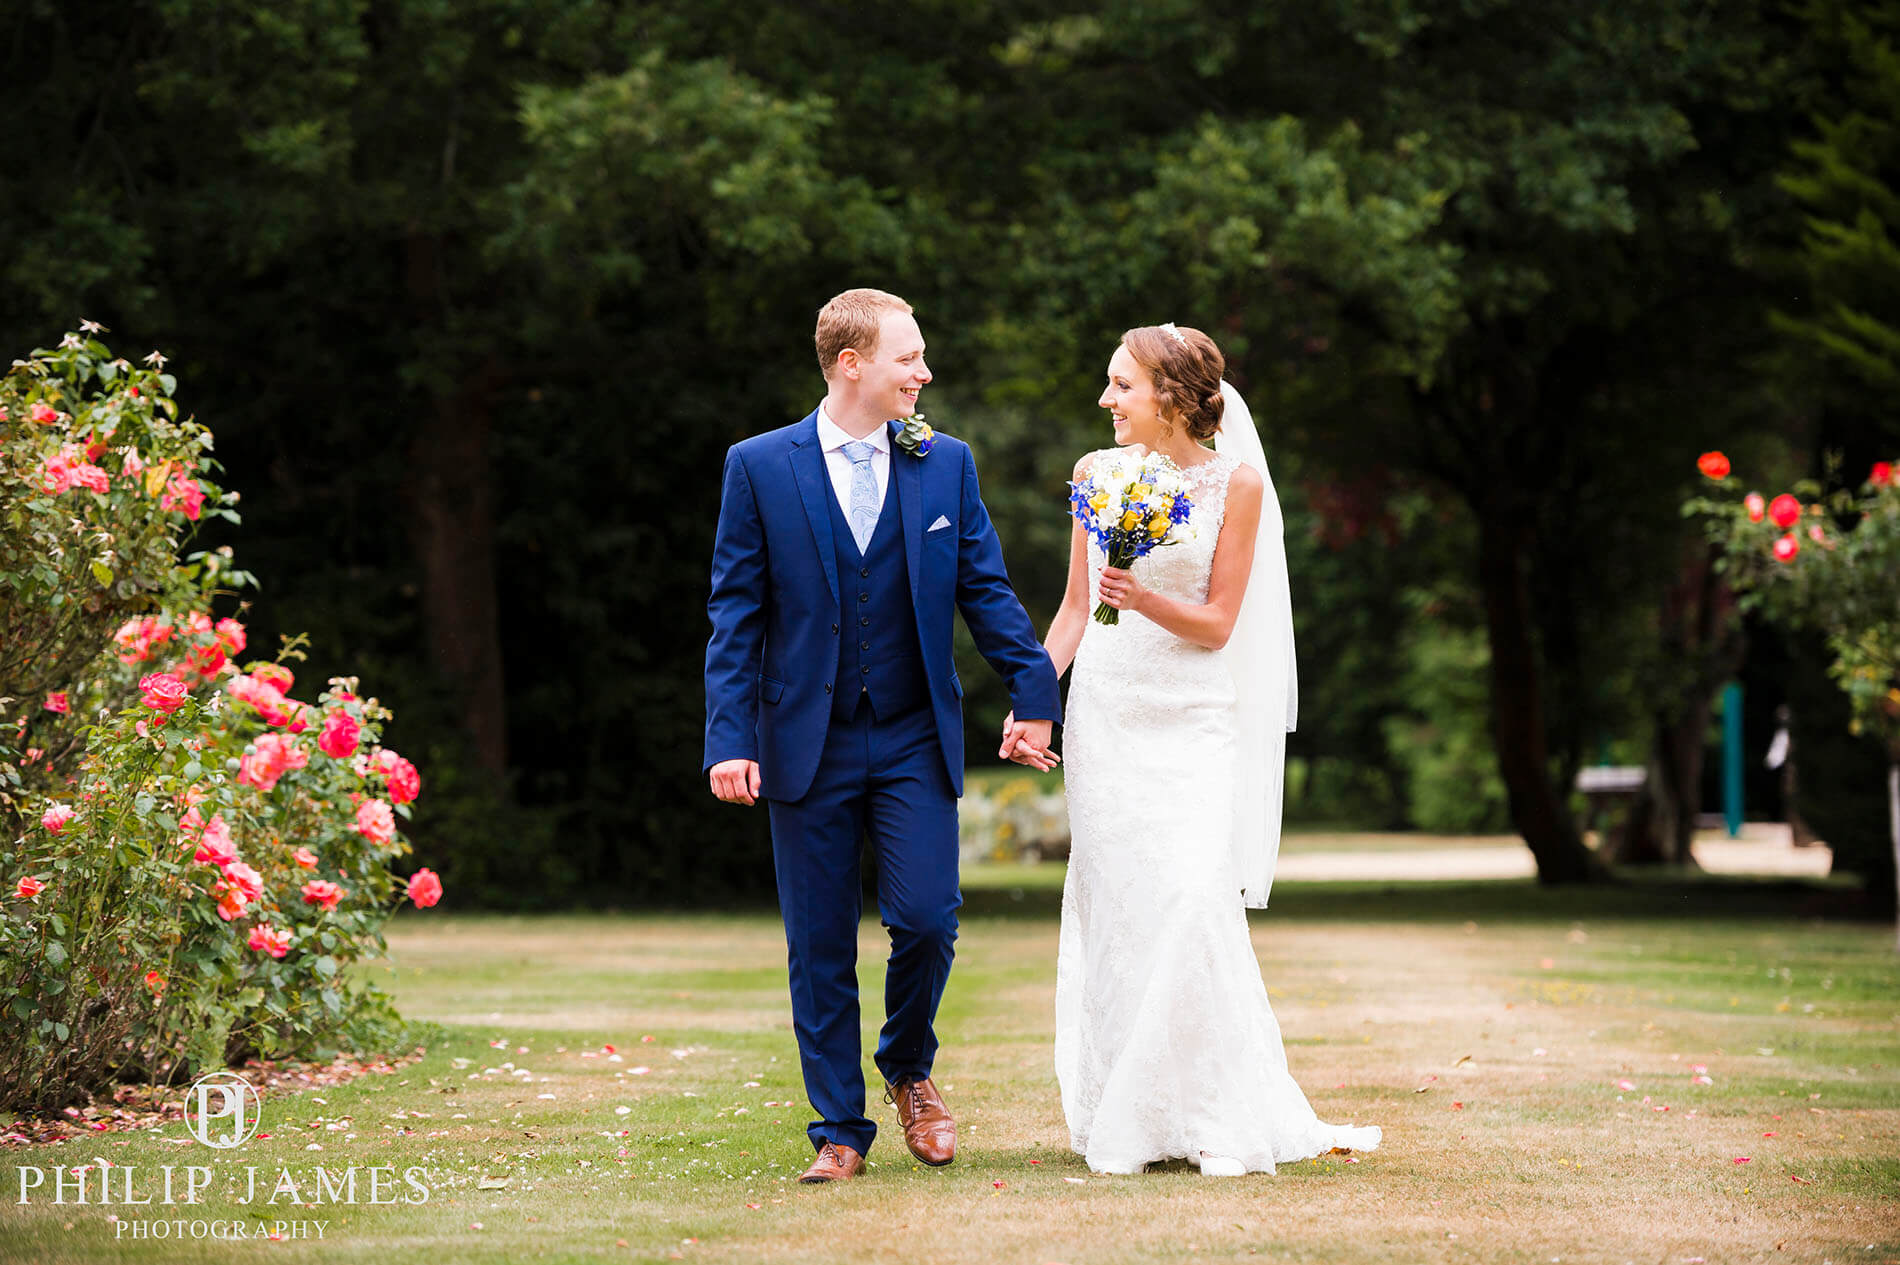 Birmingham Wedding Photographer - Philip James Photography based in Solihull (40 of 68)